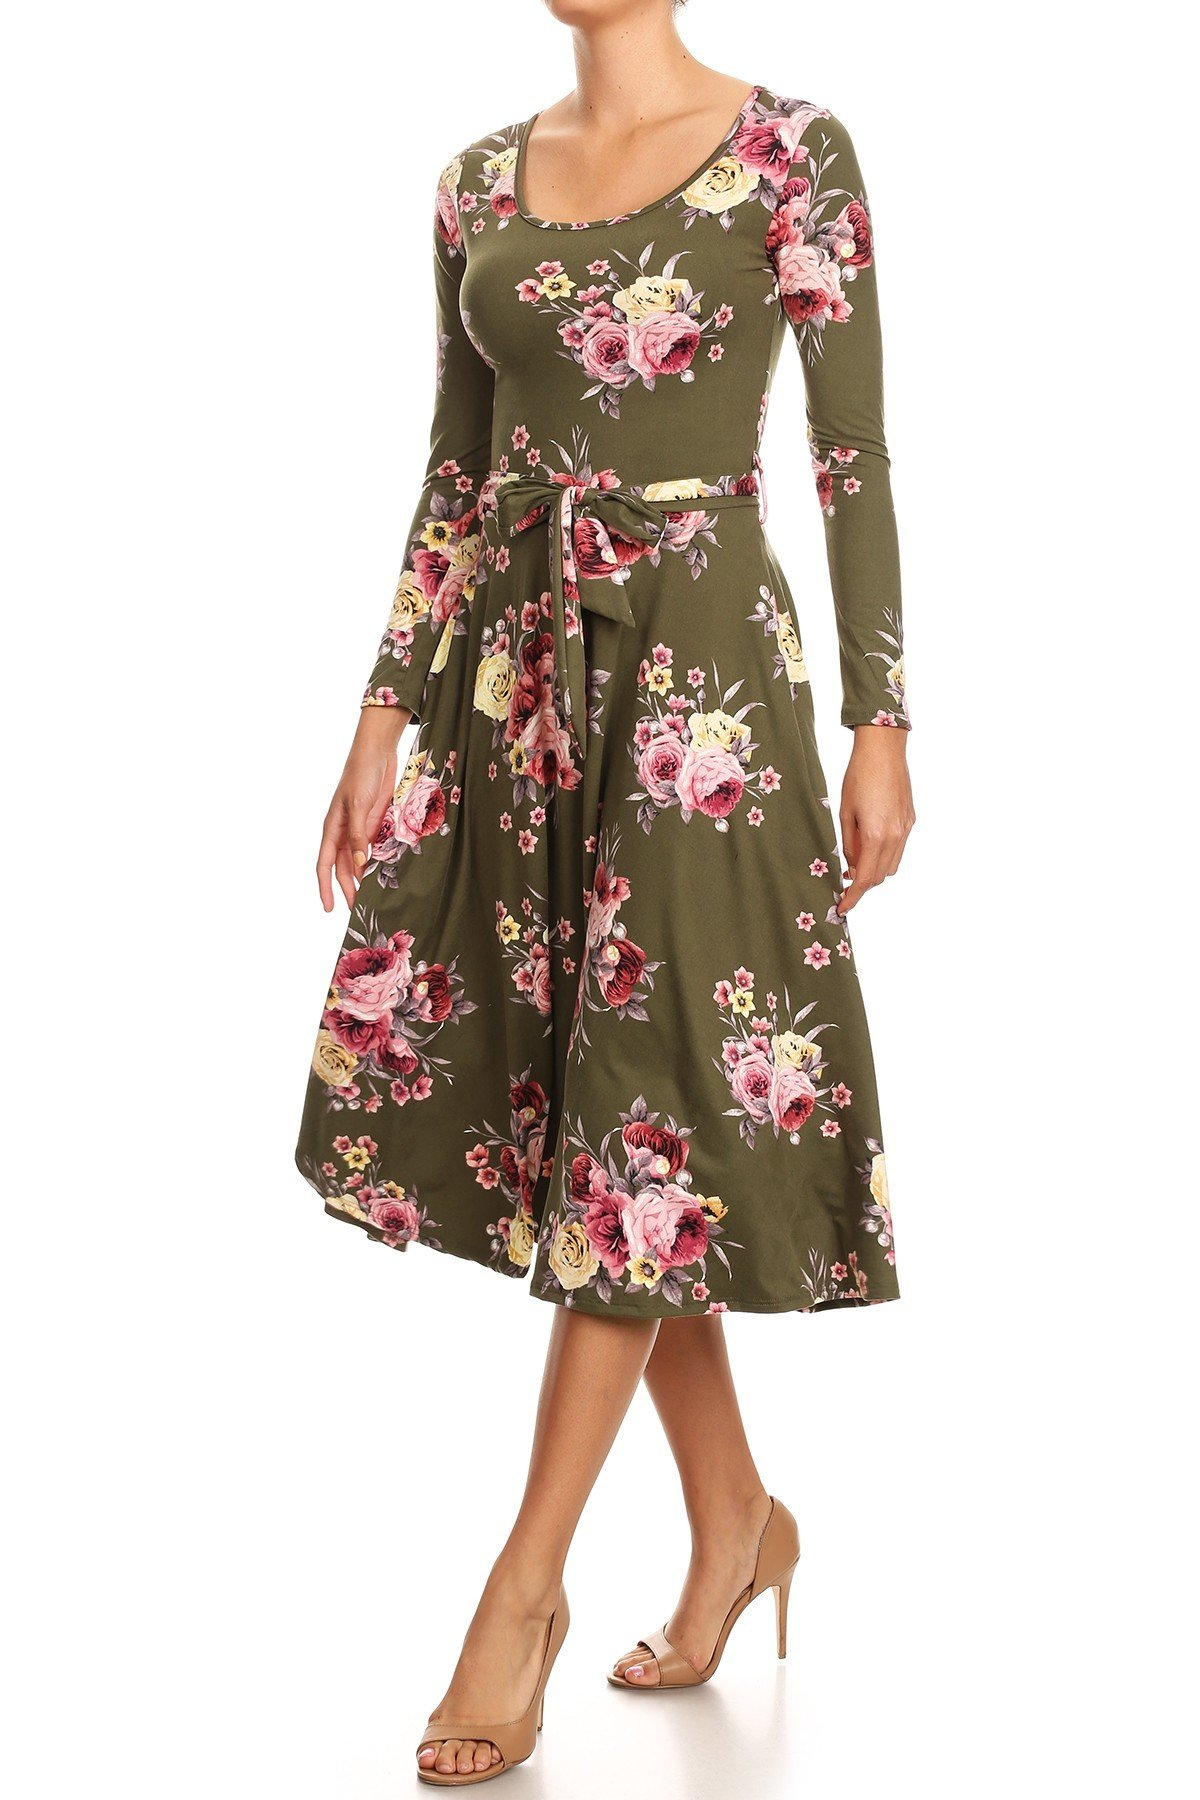 Floral Swing Dress Front View